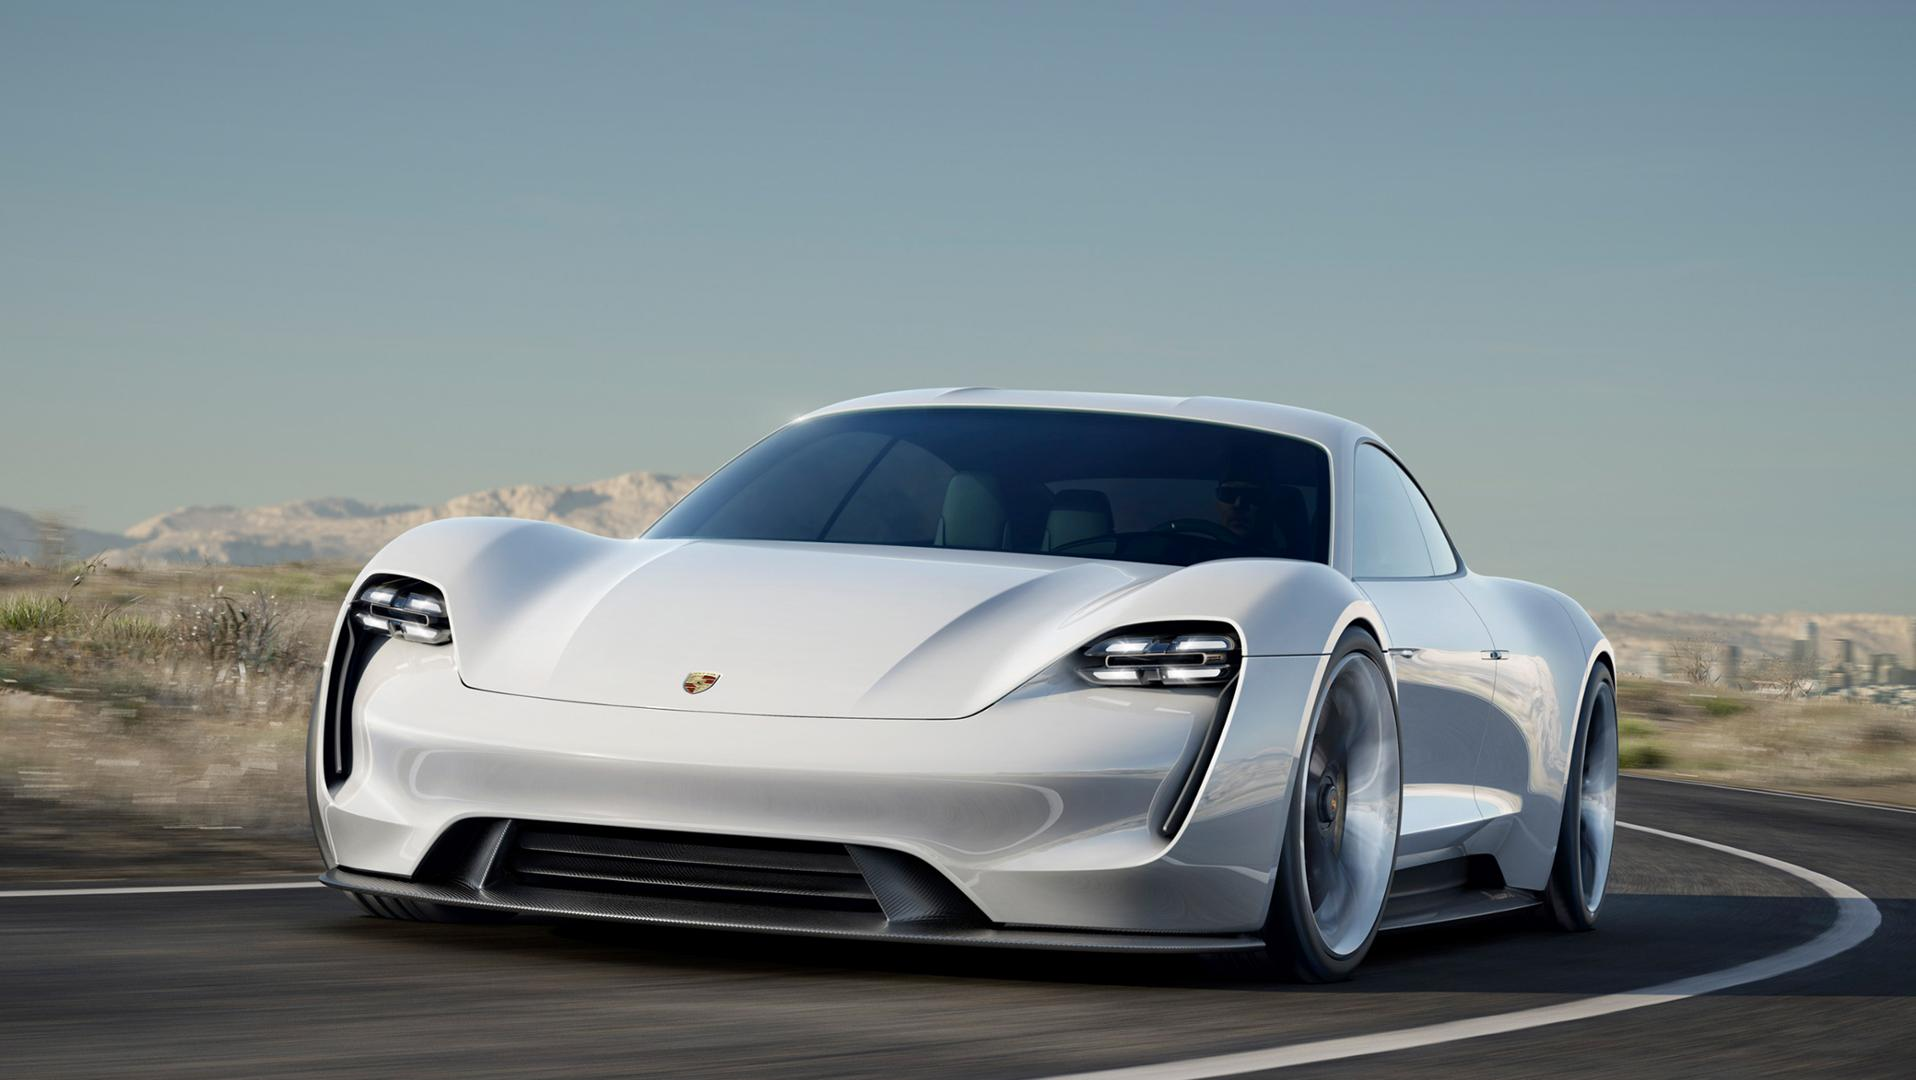 Confirmed Porsche Mission E Electric Car Will Be Built By End Of